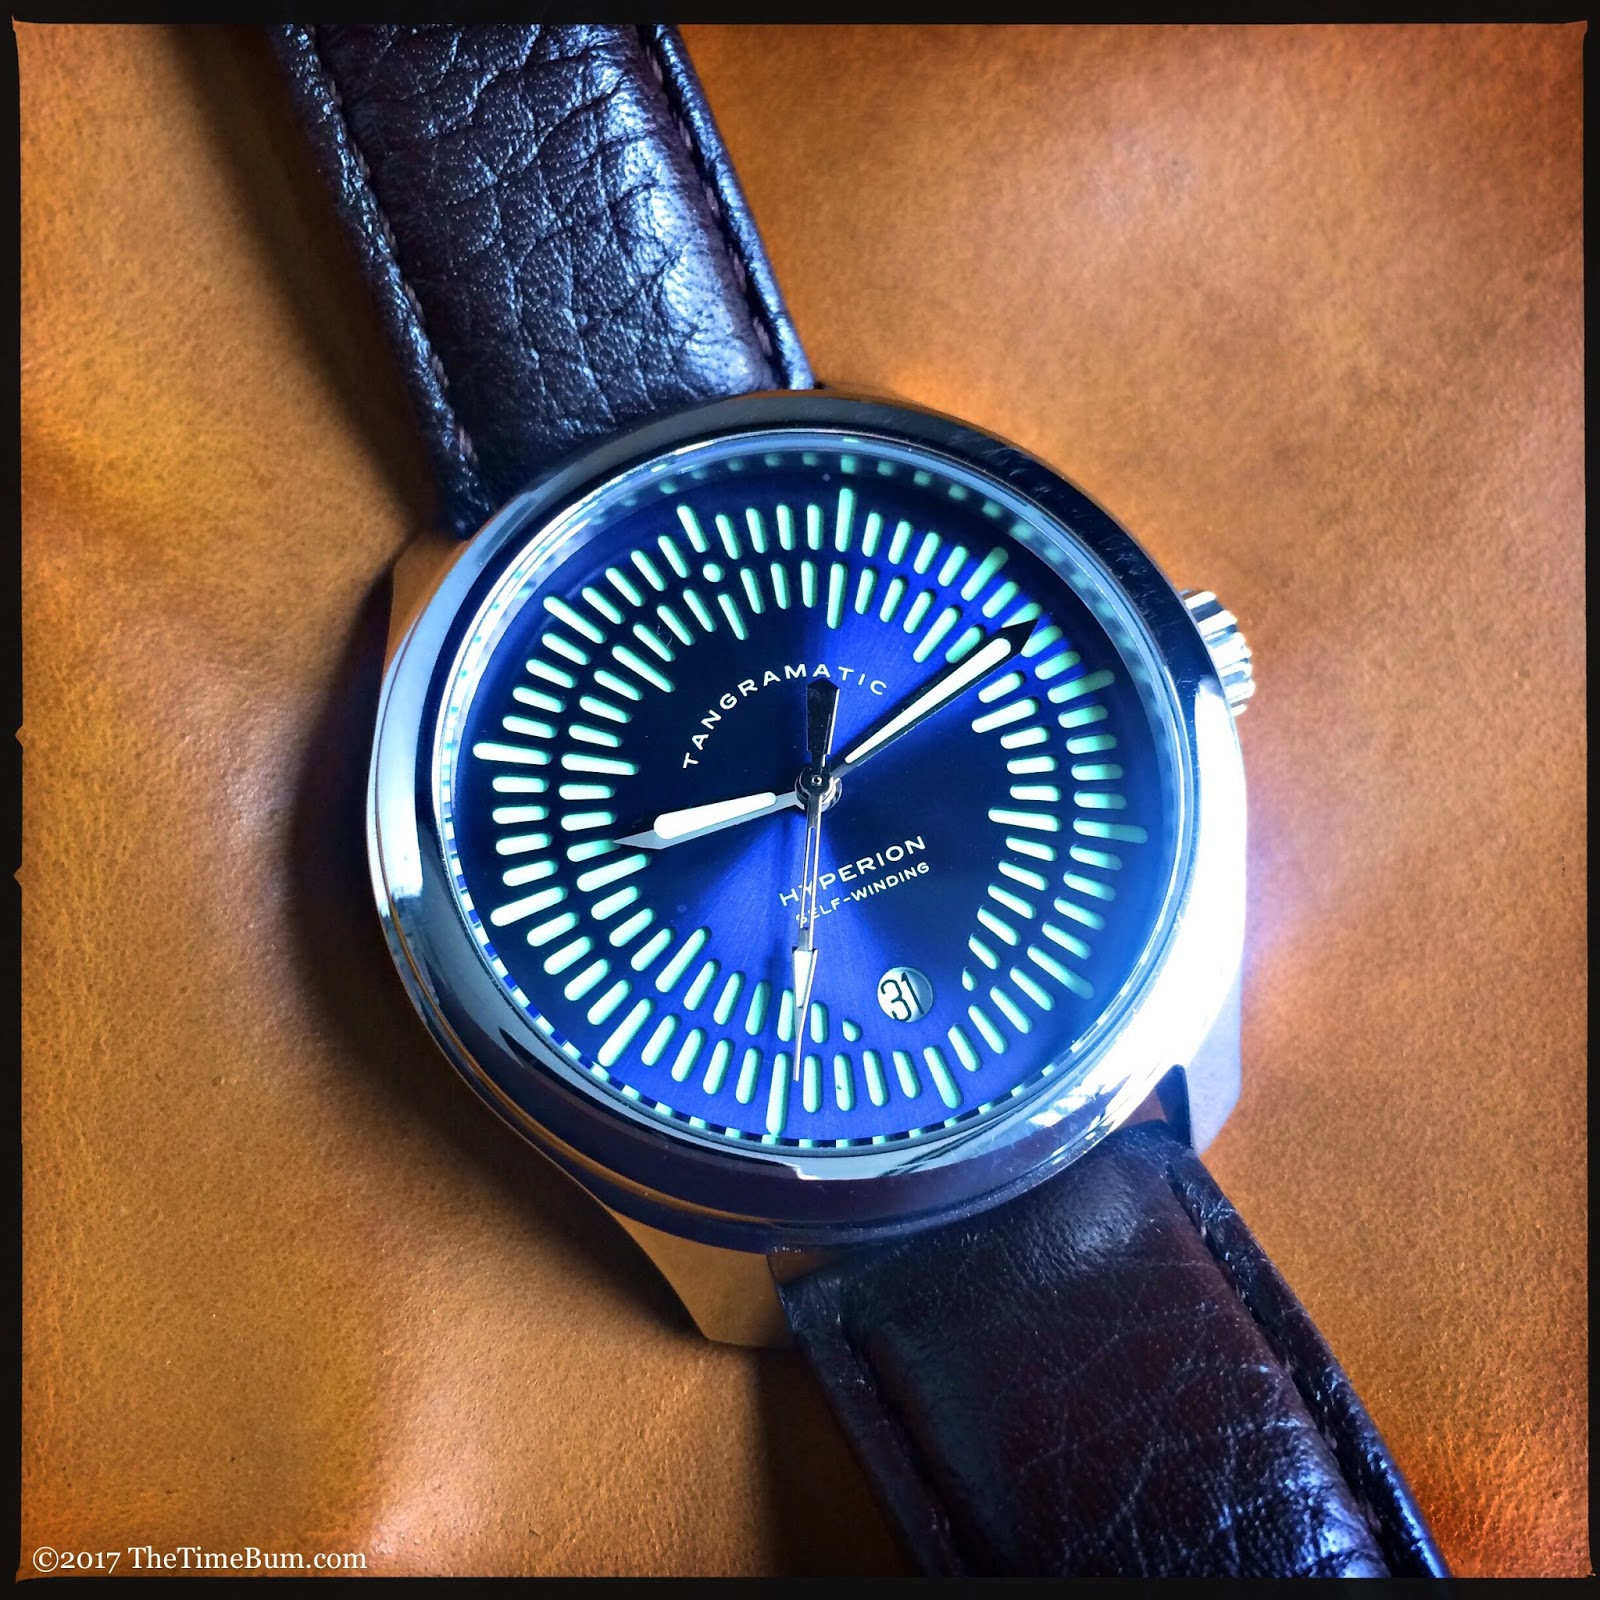 Tangramatic Hyperion automatic date